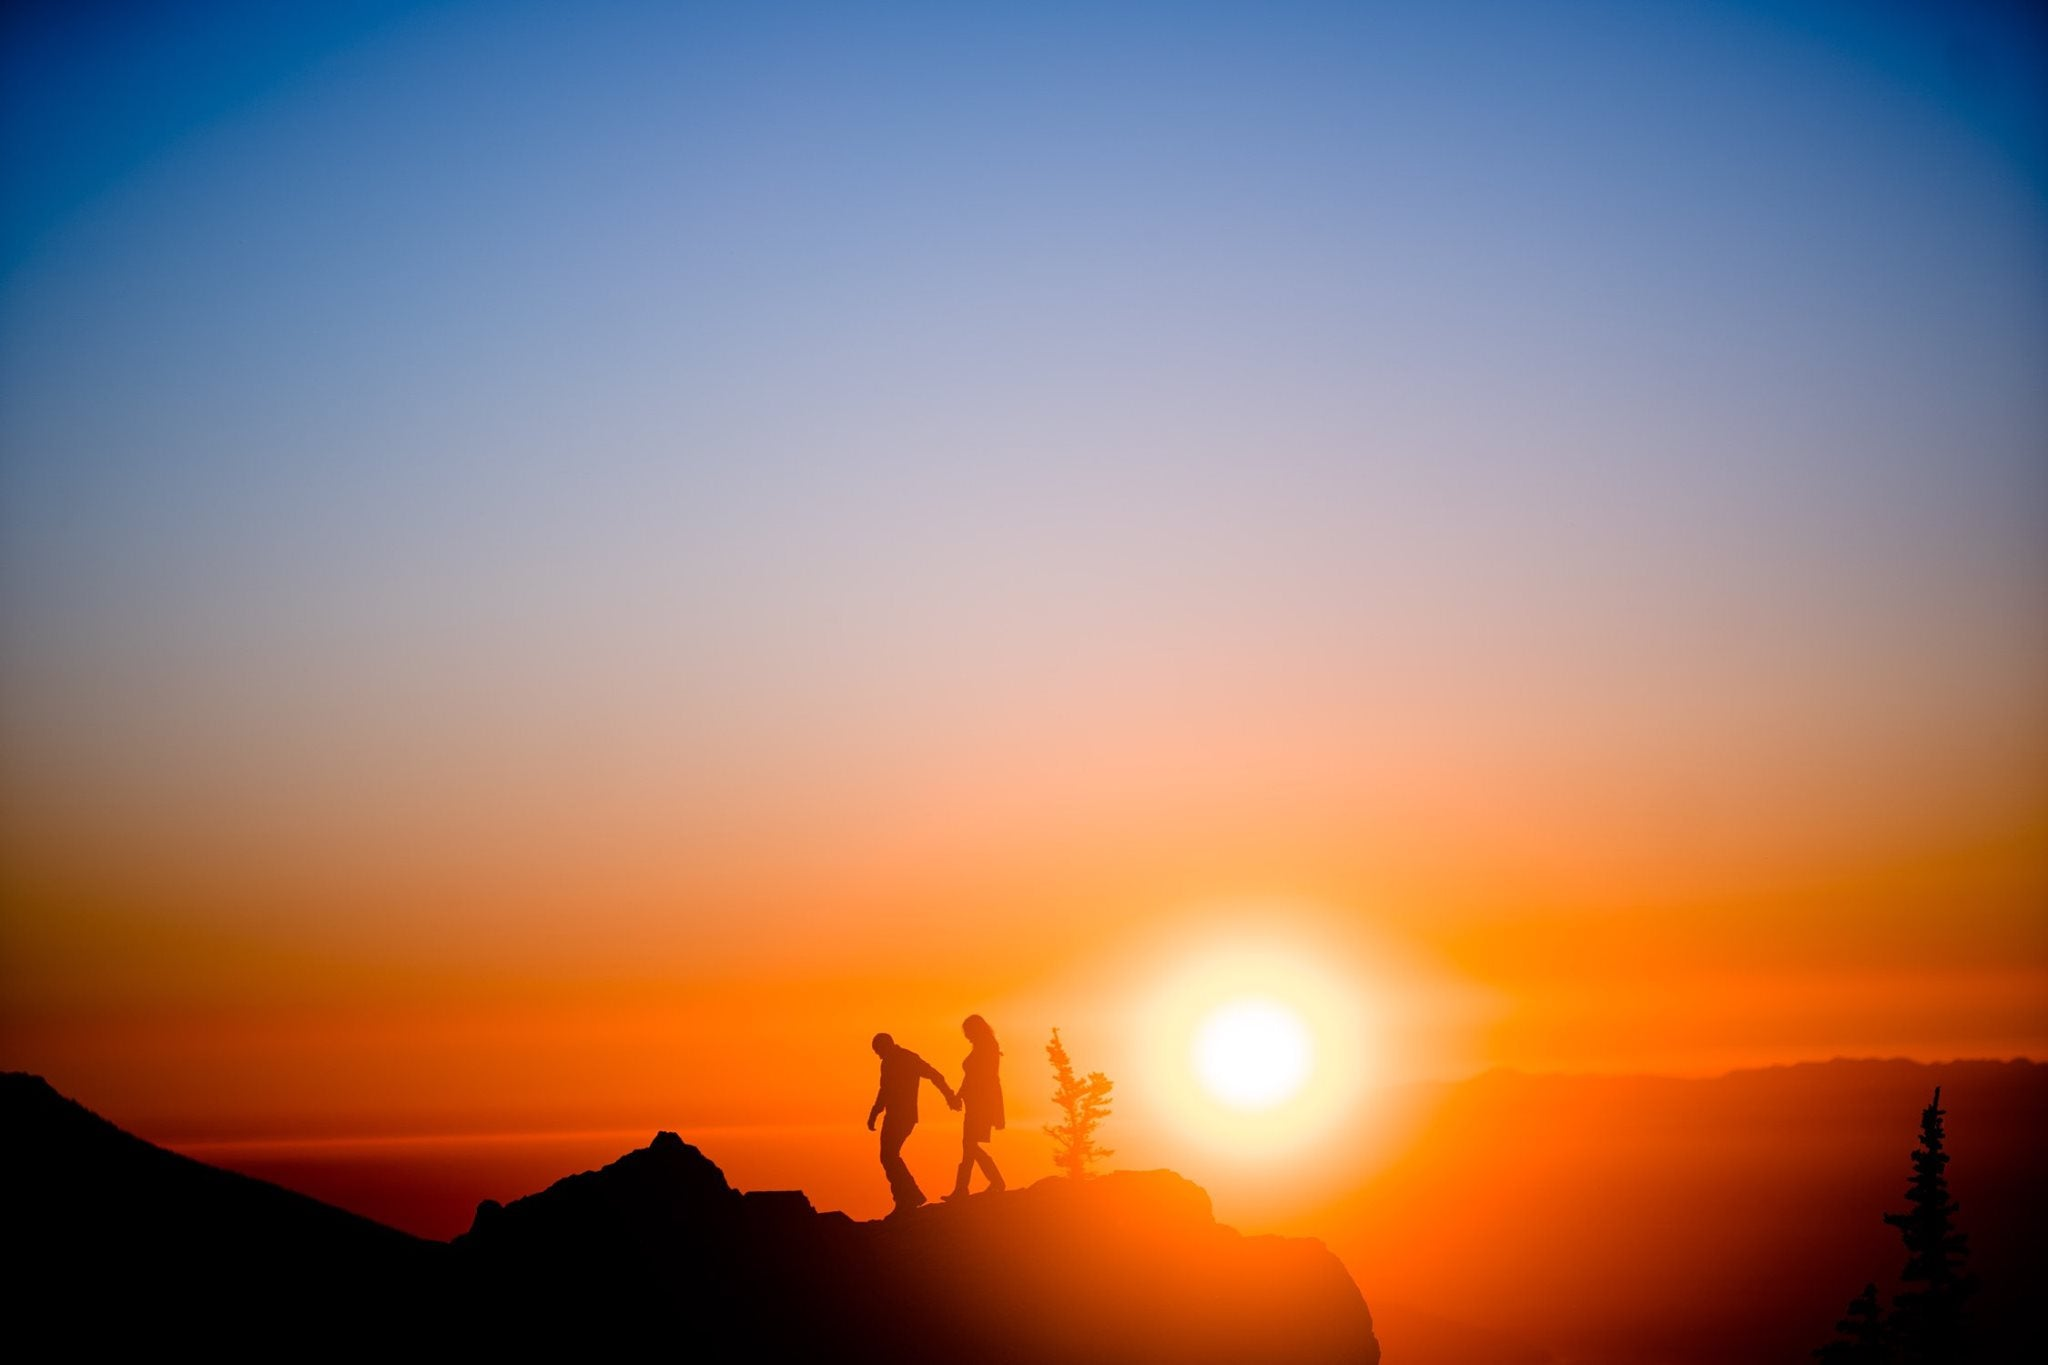 Silhouette of a couple walking holding hands on top of a cliff as the sun sets behind them